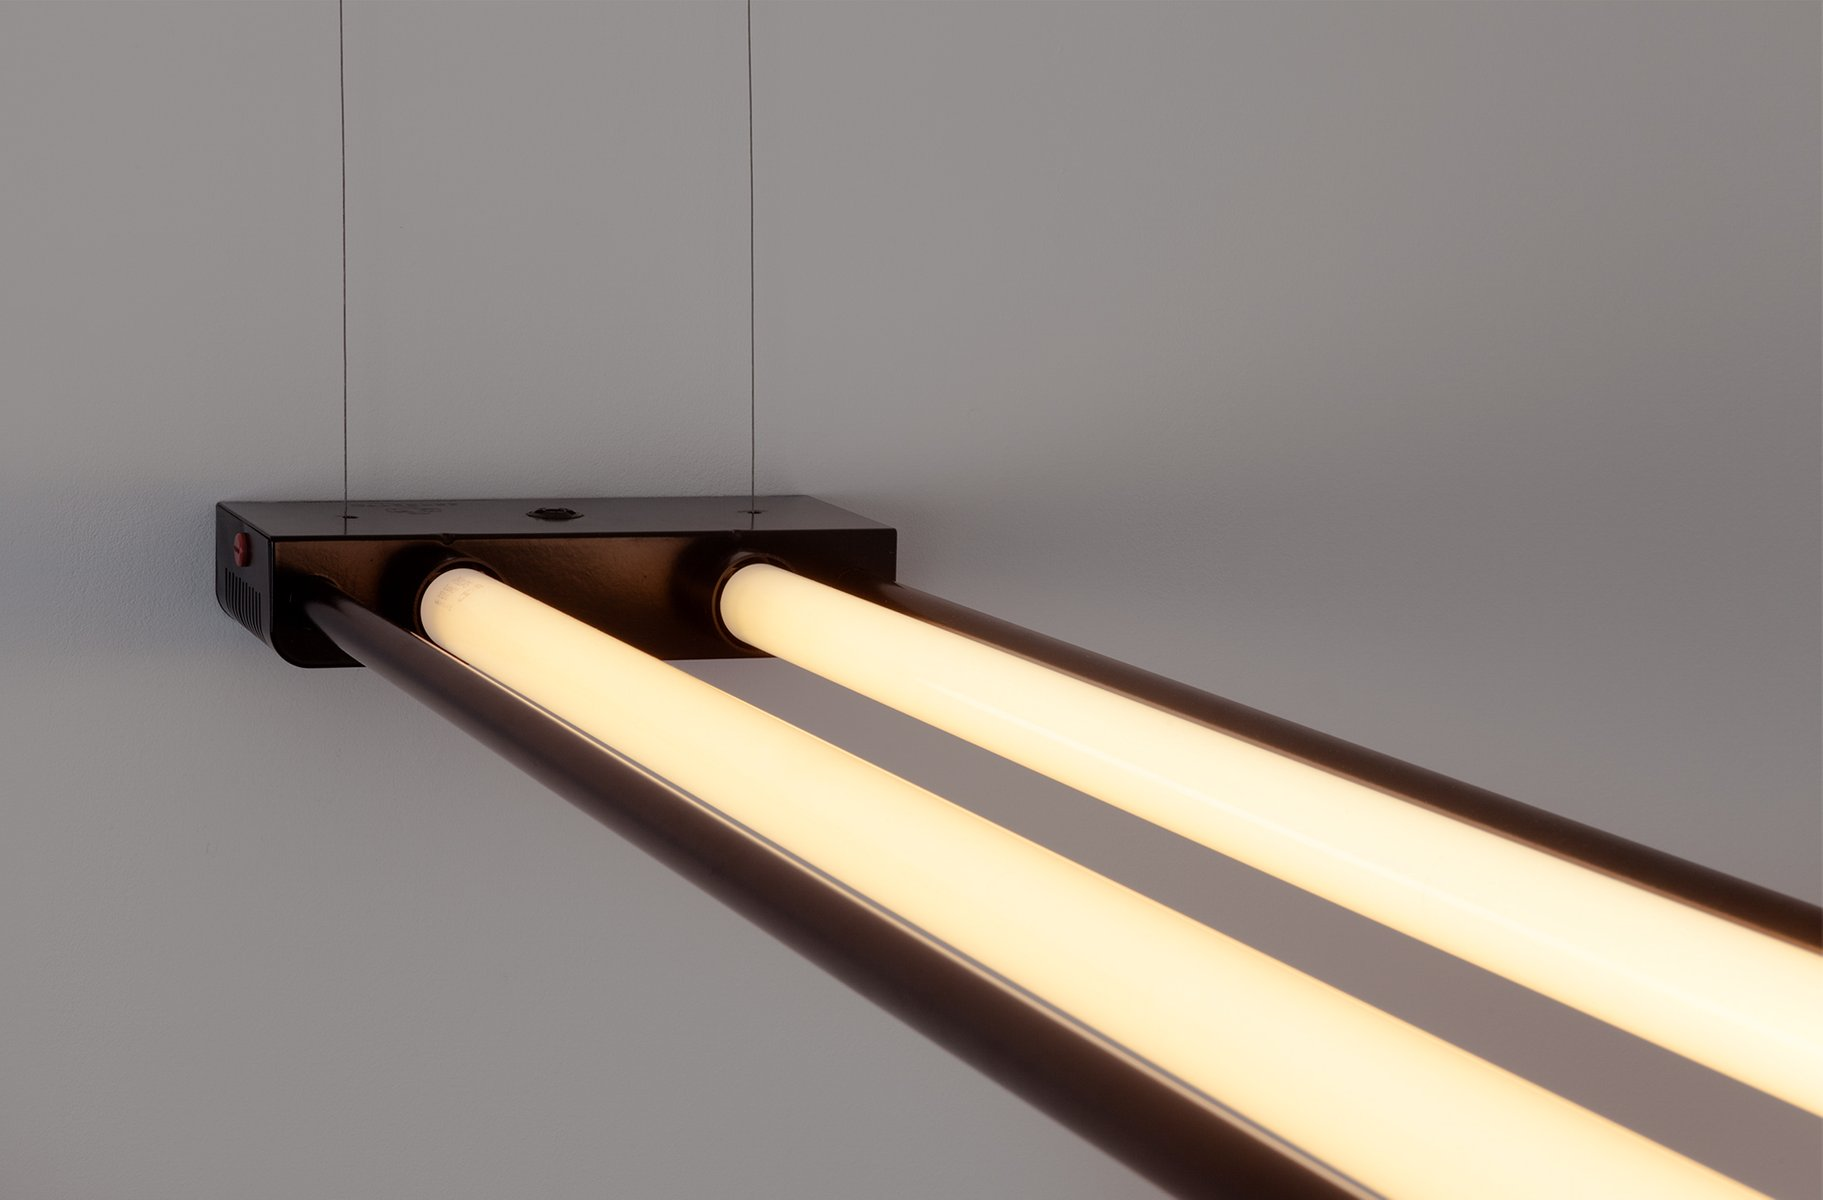 Fluorescent tube light by g n gigante m boccato a zambusi for fluorescent tube light by g n gigante m boccato a zambusi for zerbetto for sale at pamono arubaitofo Choice Image